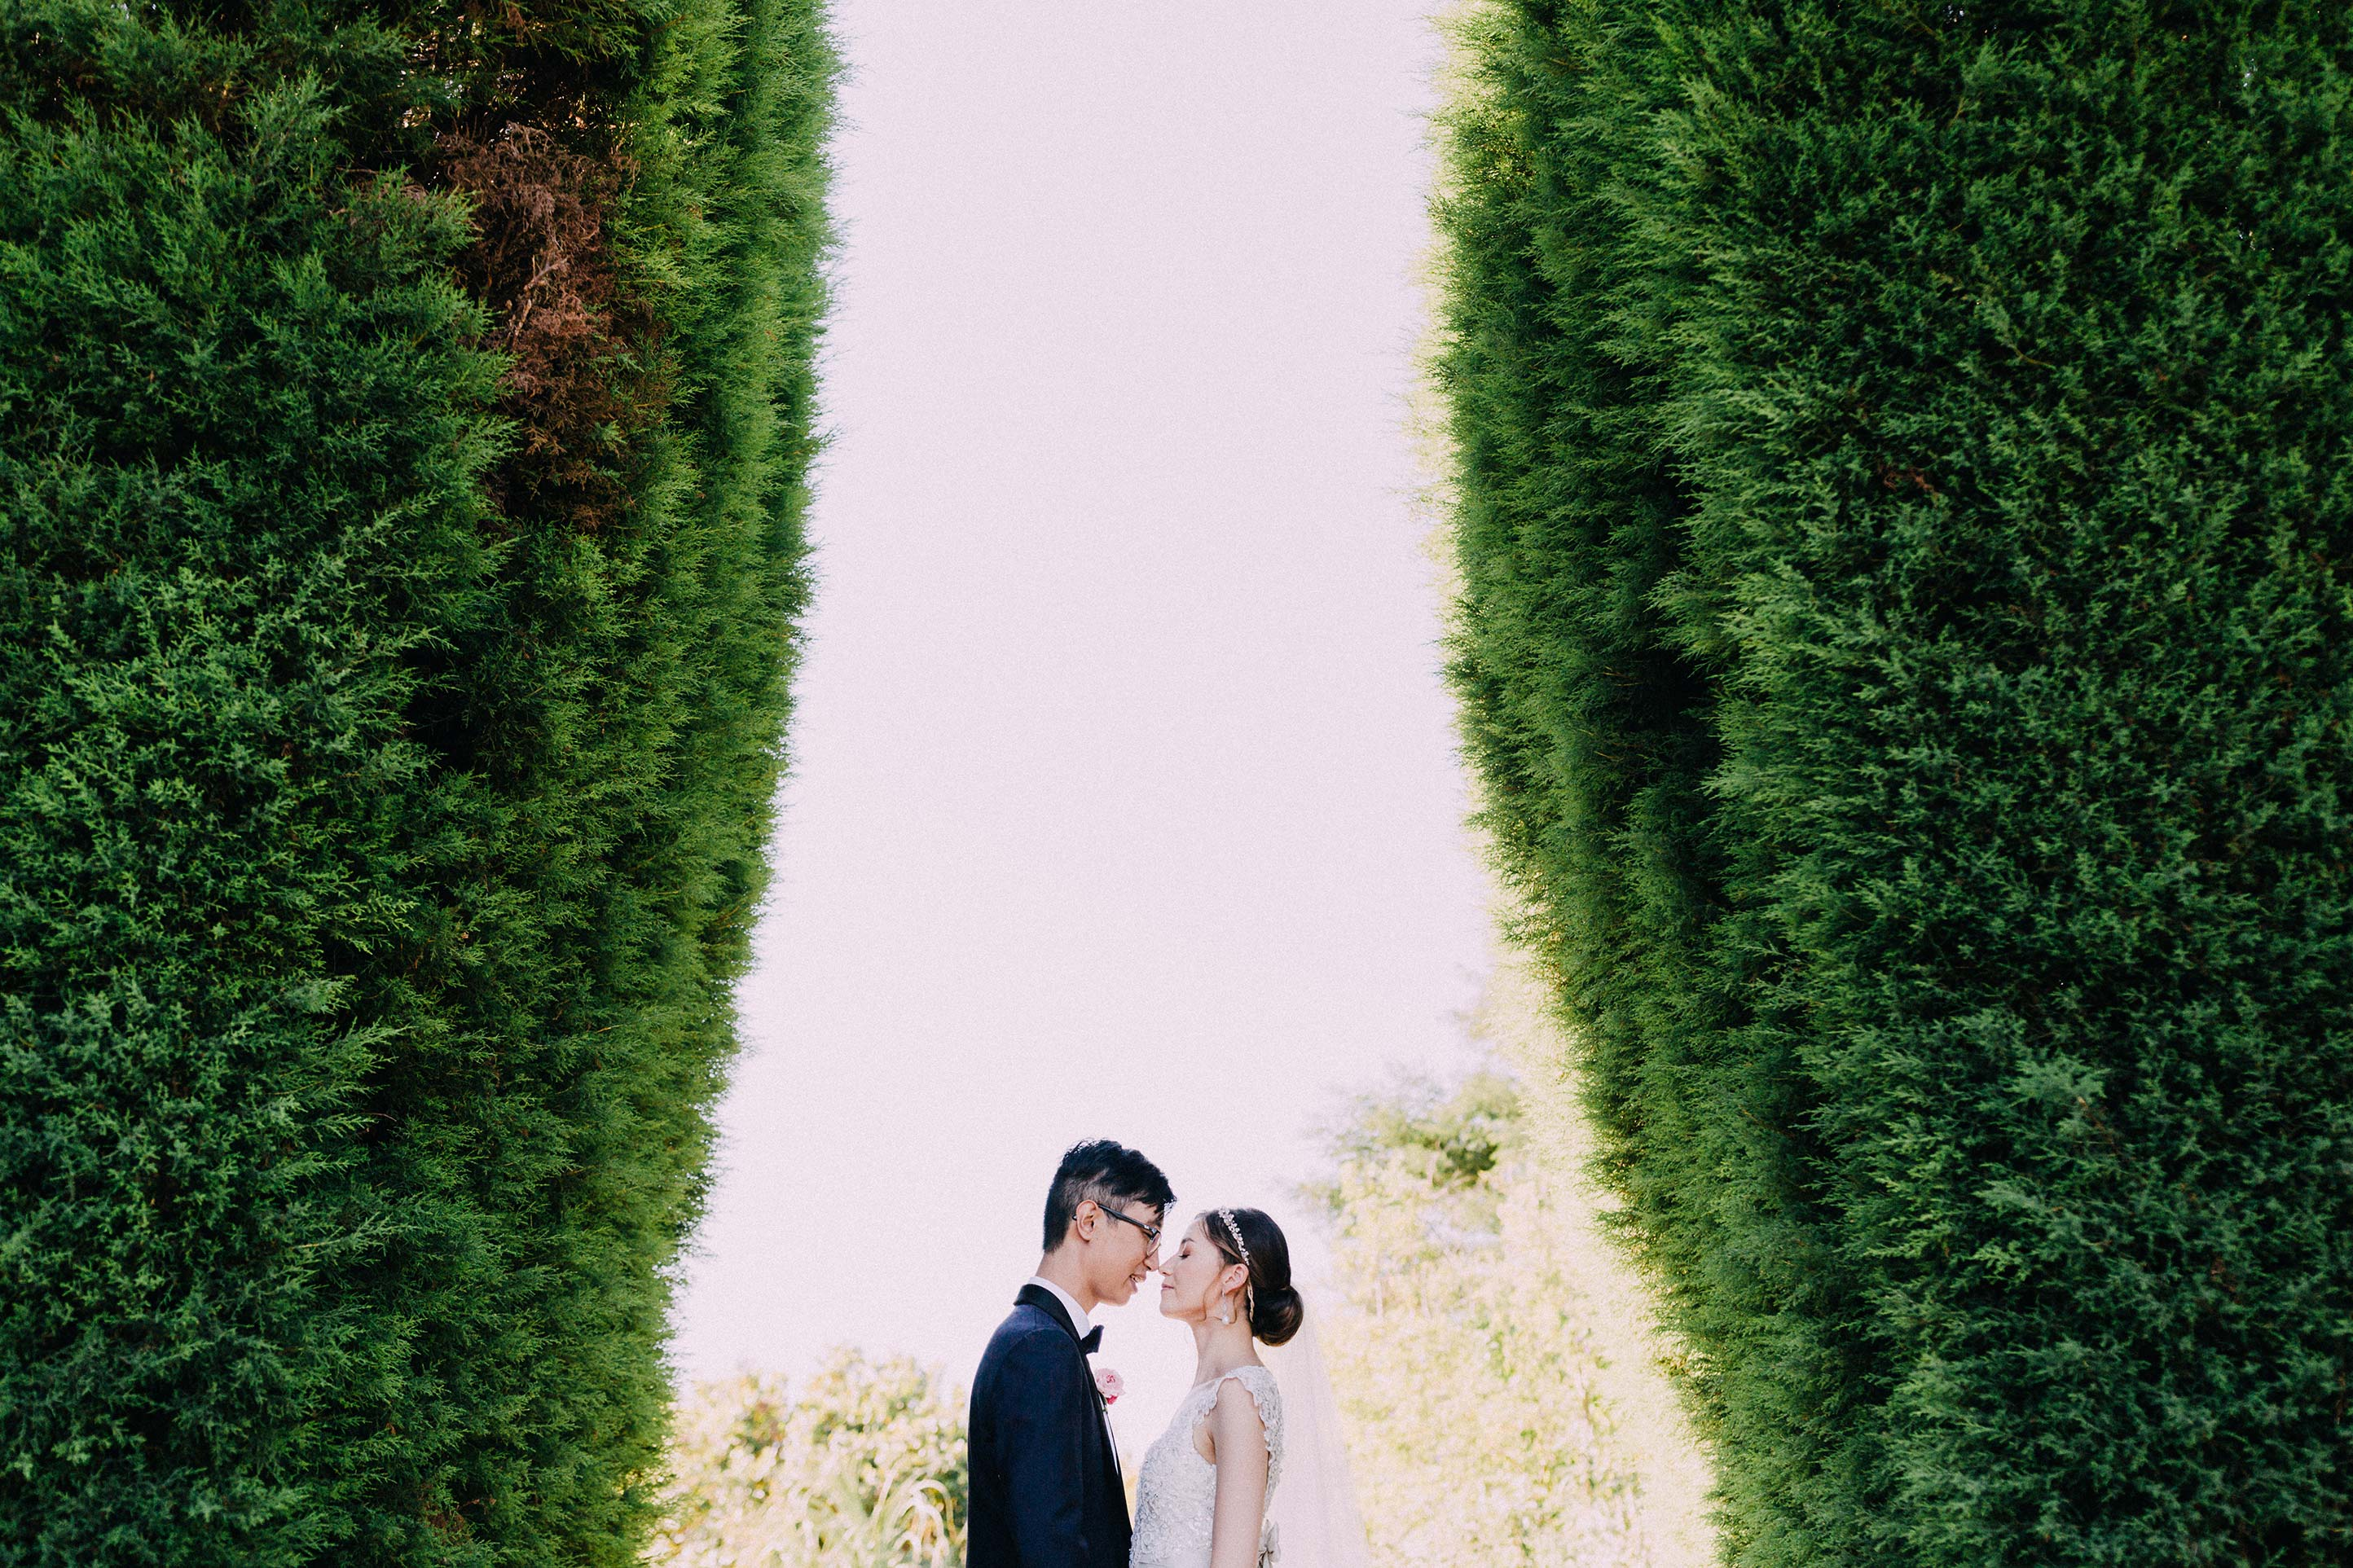 Melbourne-st-kilda-botanical-garden-wedding-photographer-summer-portrait